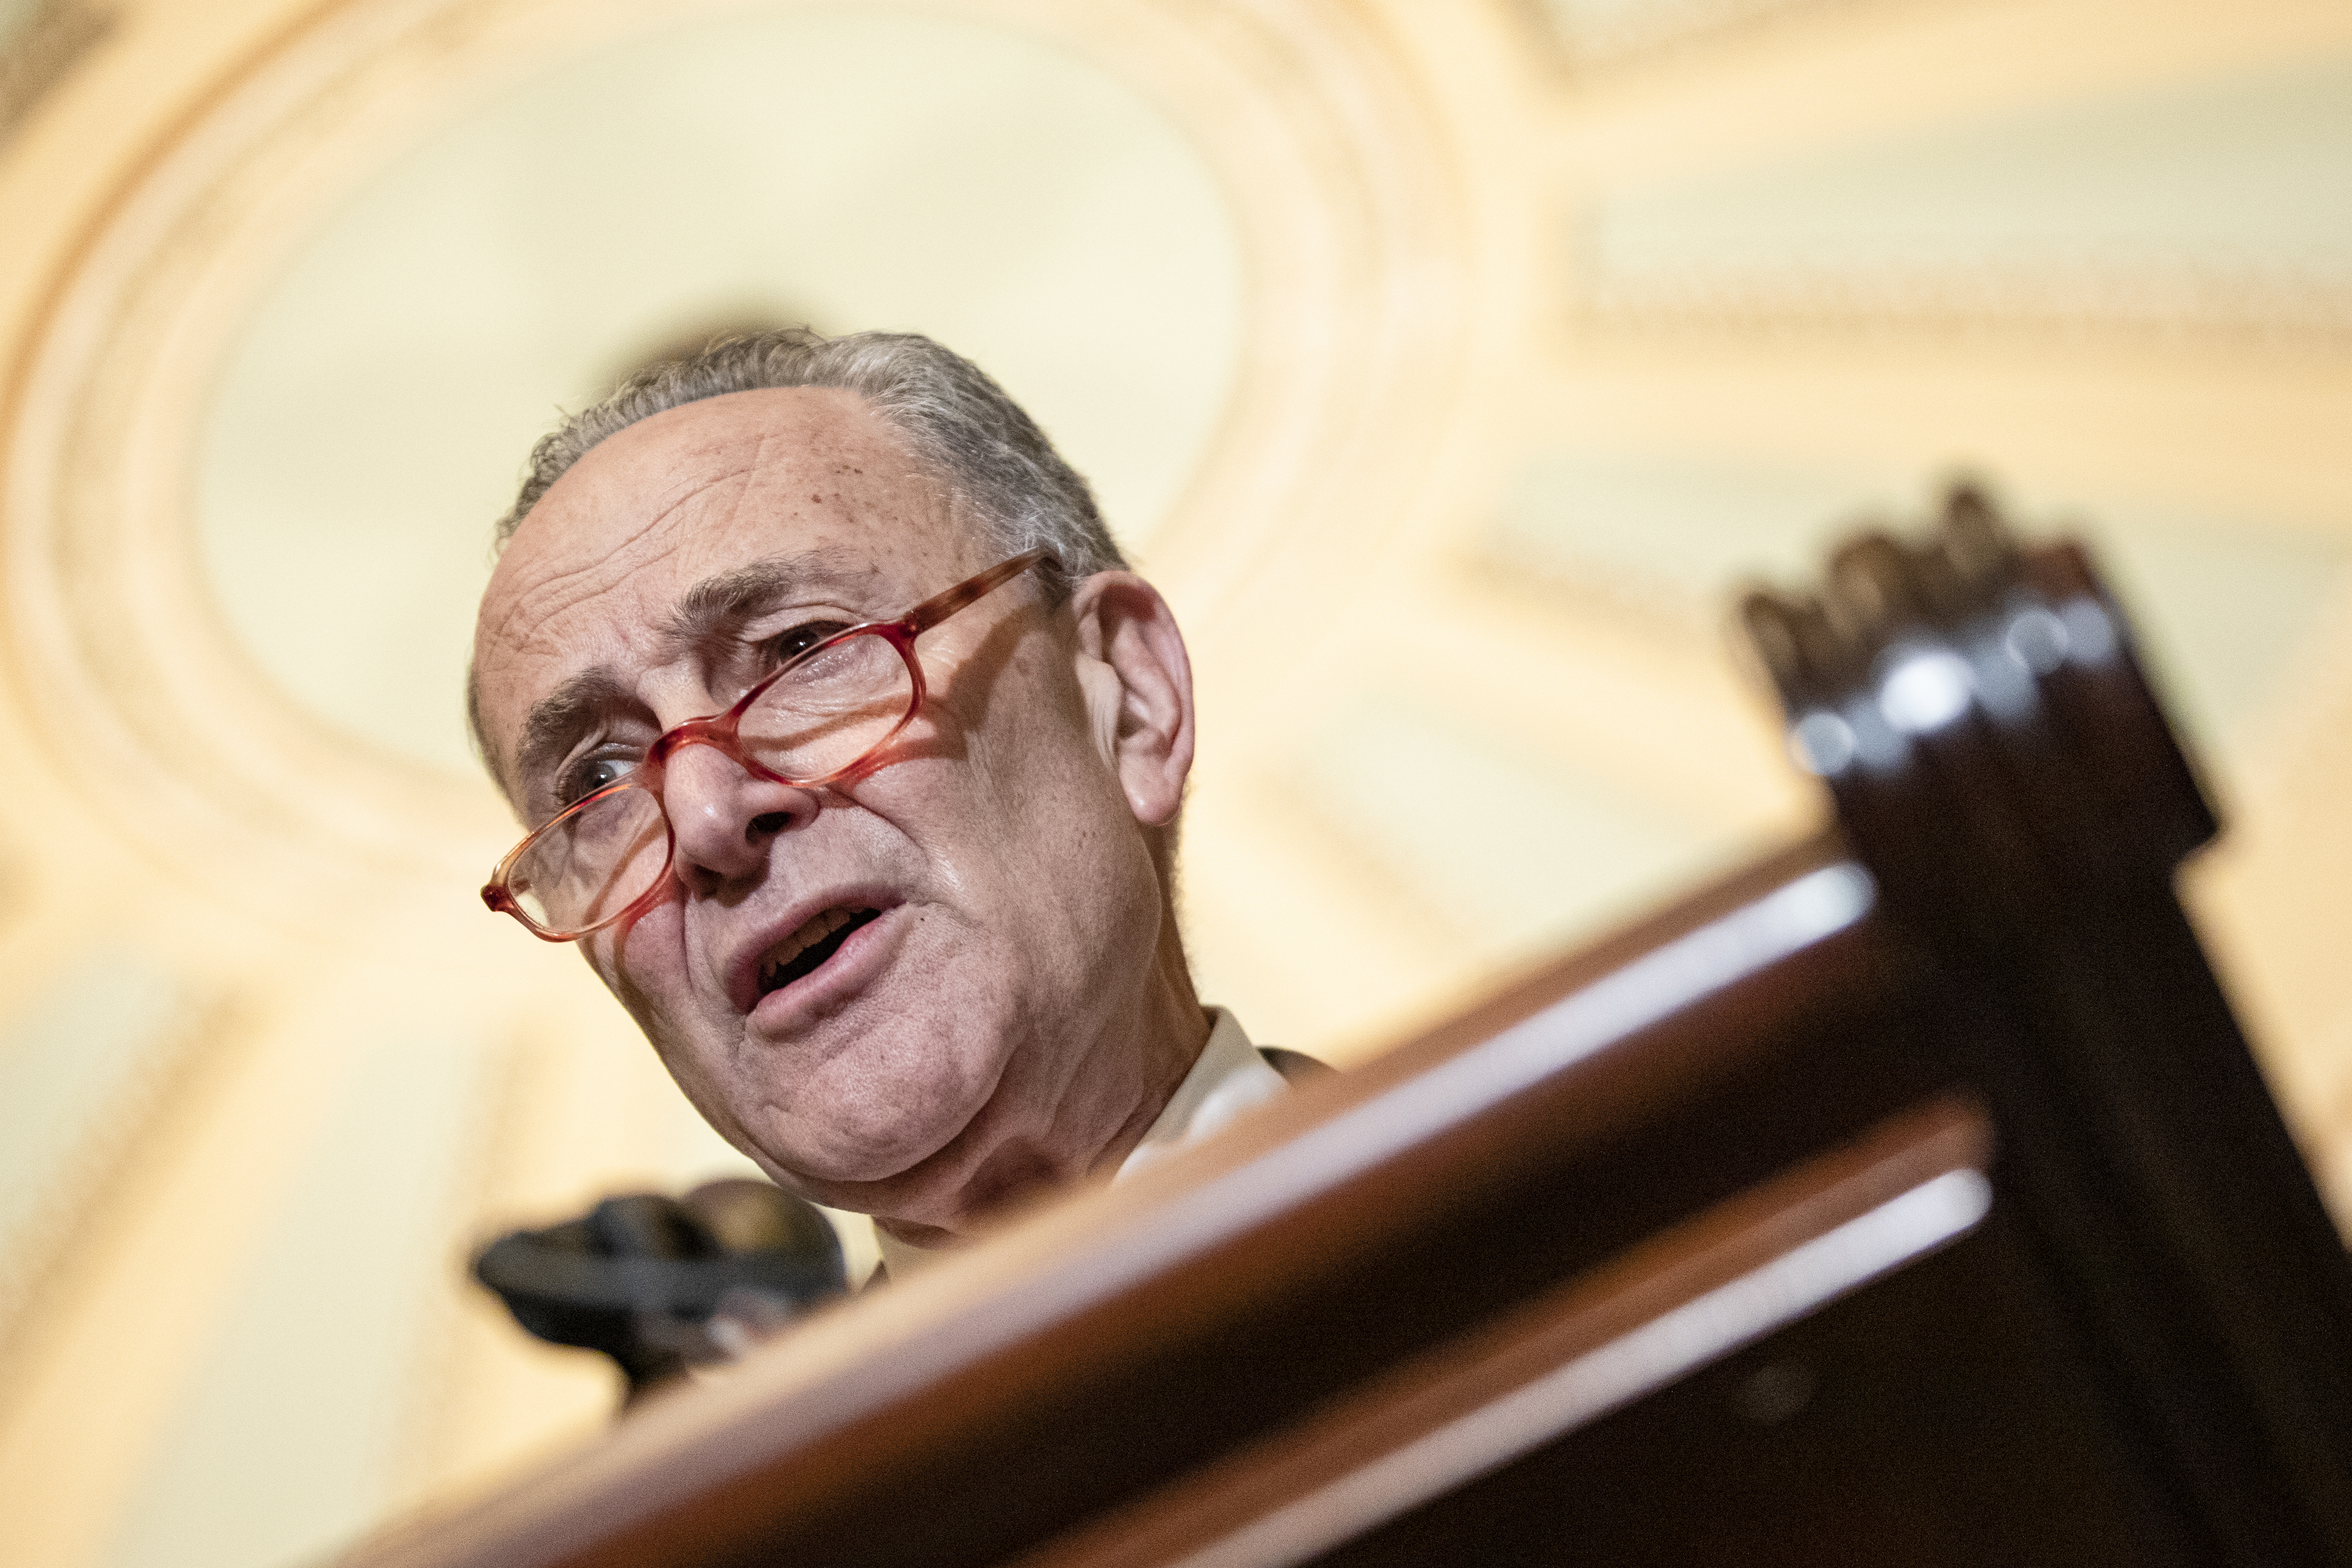 WASHINGTON, DC - MARCH 10: Senate Minority Leader Chuck Schumer (D-NY) talks to reporters following the Senate Democrats weekly policy luncheon on Capitol Hill on March 10, 2020 in Washington, DC. Democratic leadership criticized President Trumps response to the spread of the coronavirus and pushed for relief for individuals that may have to miss work from being quarantined. (Photo by Samuel Corum/Getty Images) *** Local Caption *** Chuck Schumer